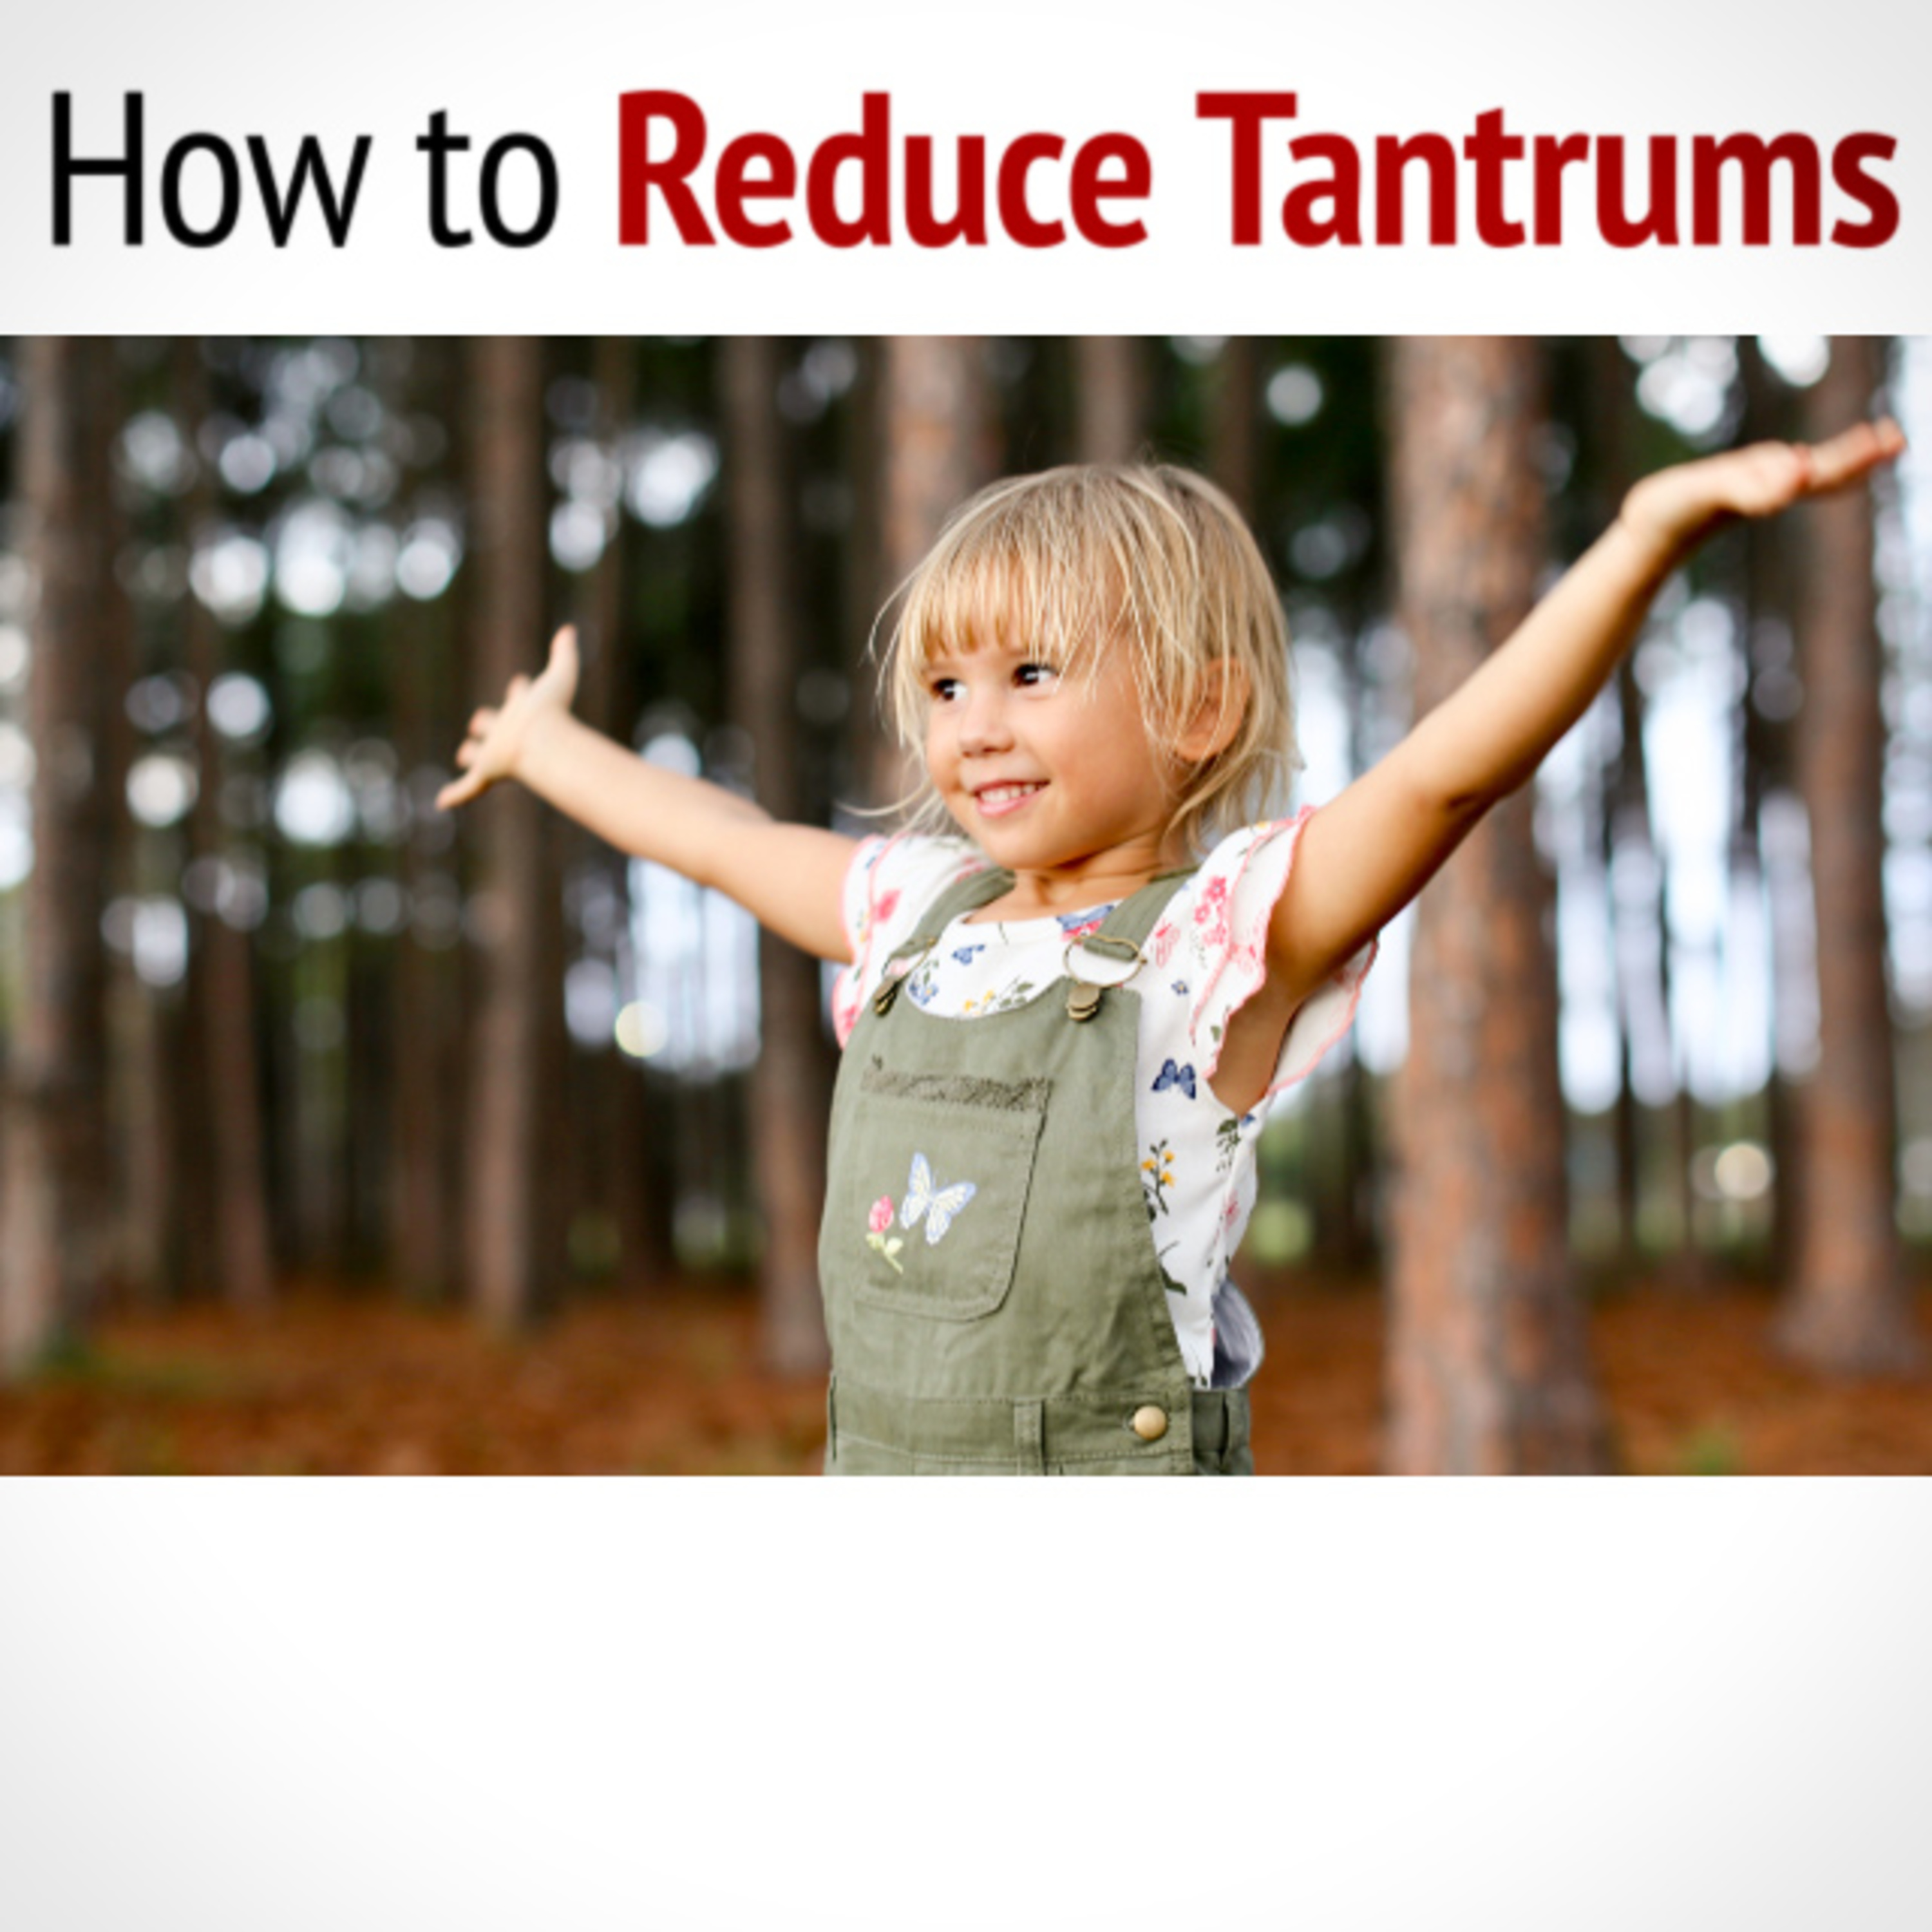 How to REDUCE TANTRUMS